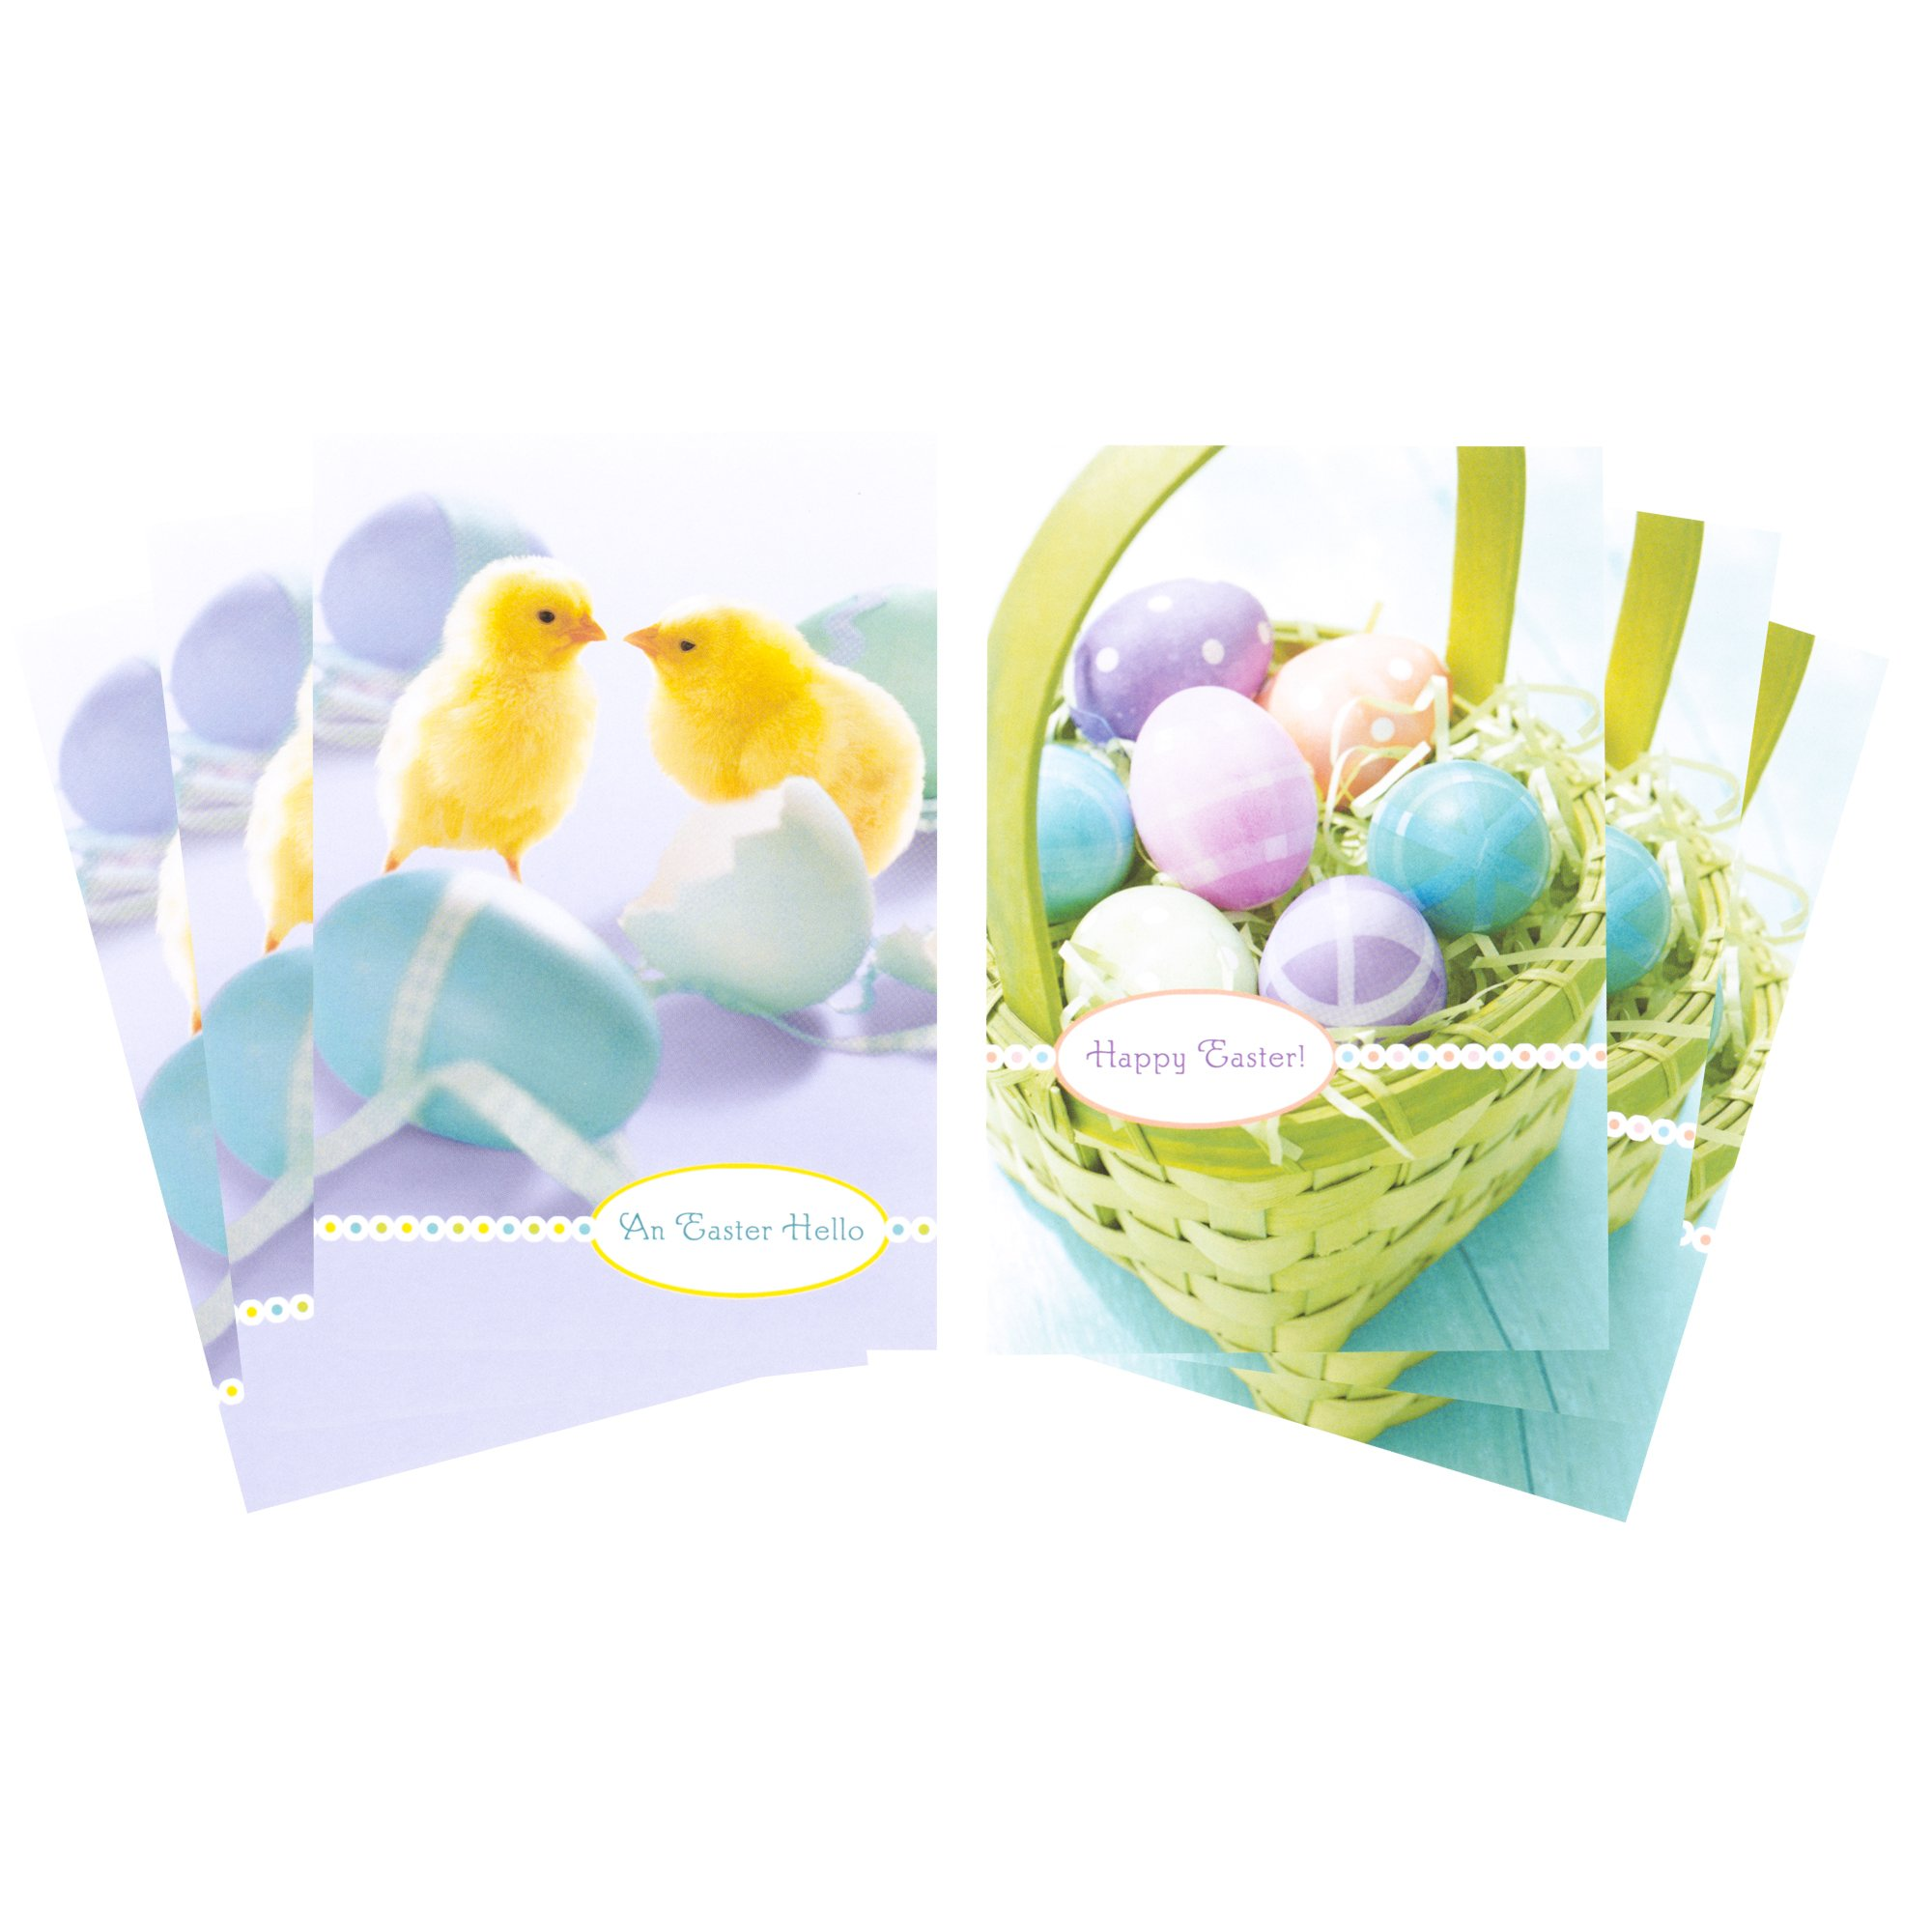 Amazon Assortment Of Easter Cards 15 Blank Easter Cards